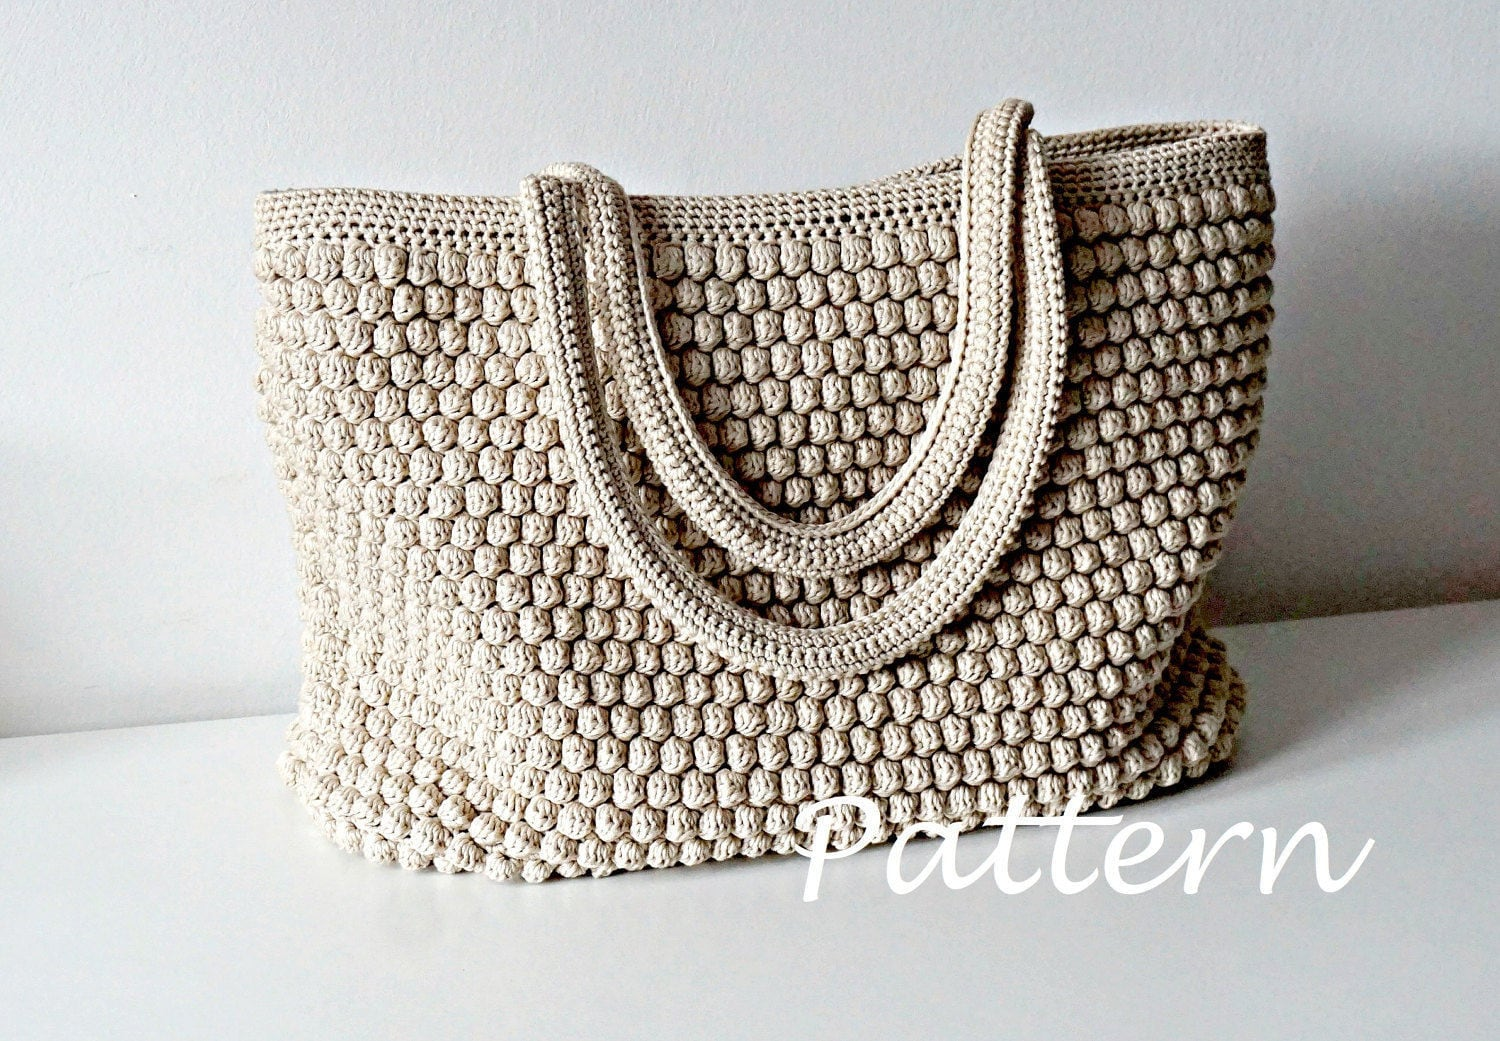 Crochet pattern crochet bag pattern tote pattern crochet purse zoom bankloansurffo Choice Image